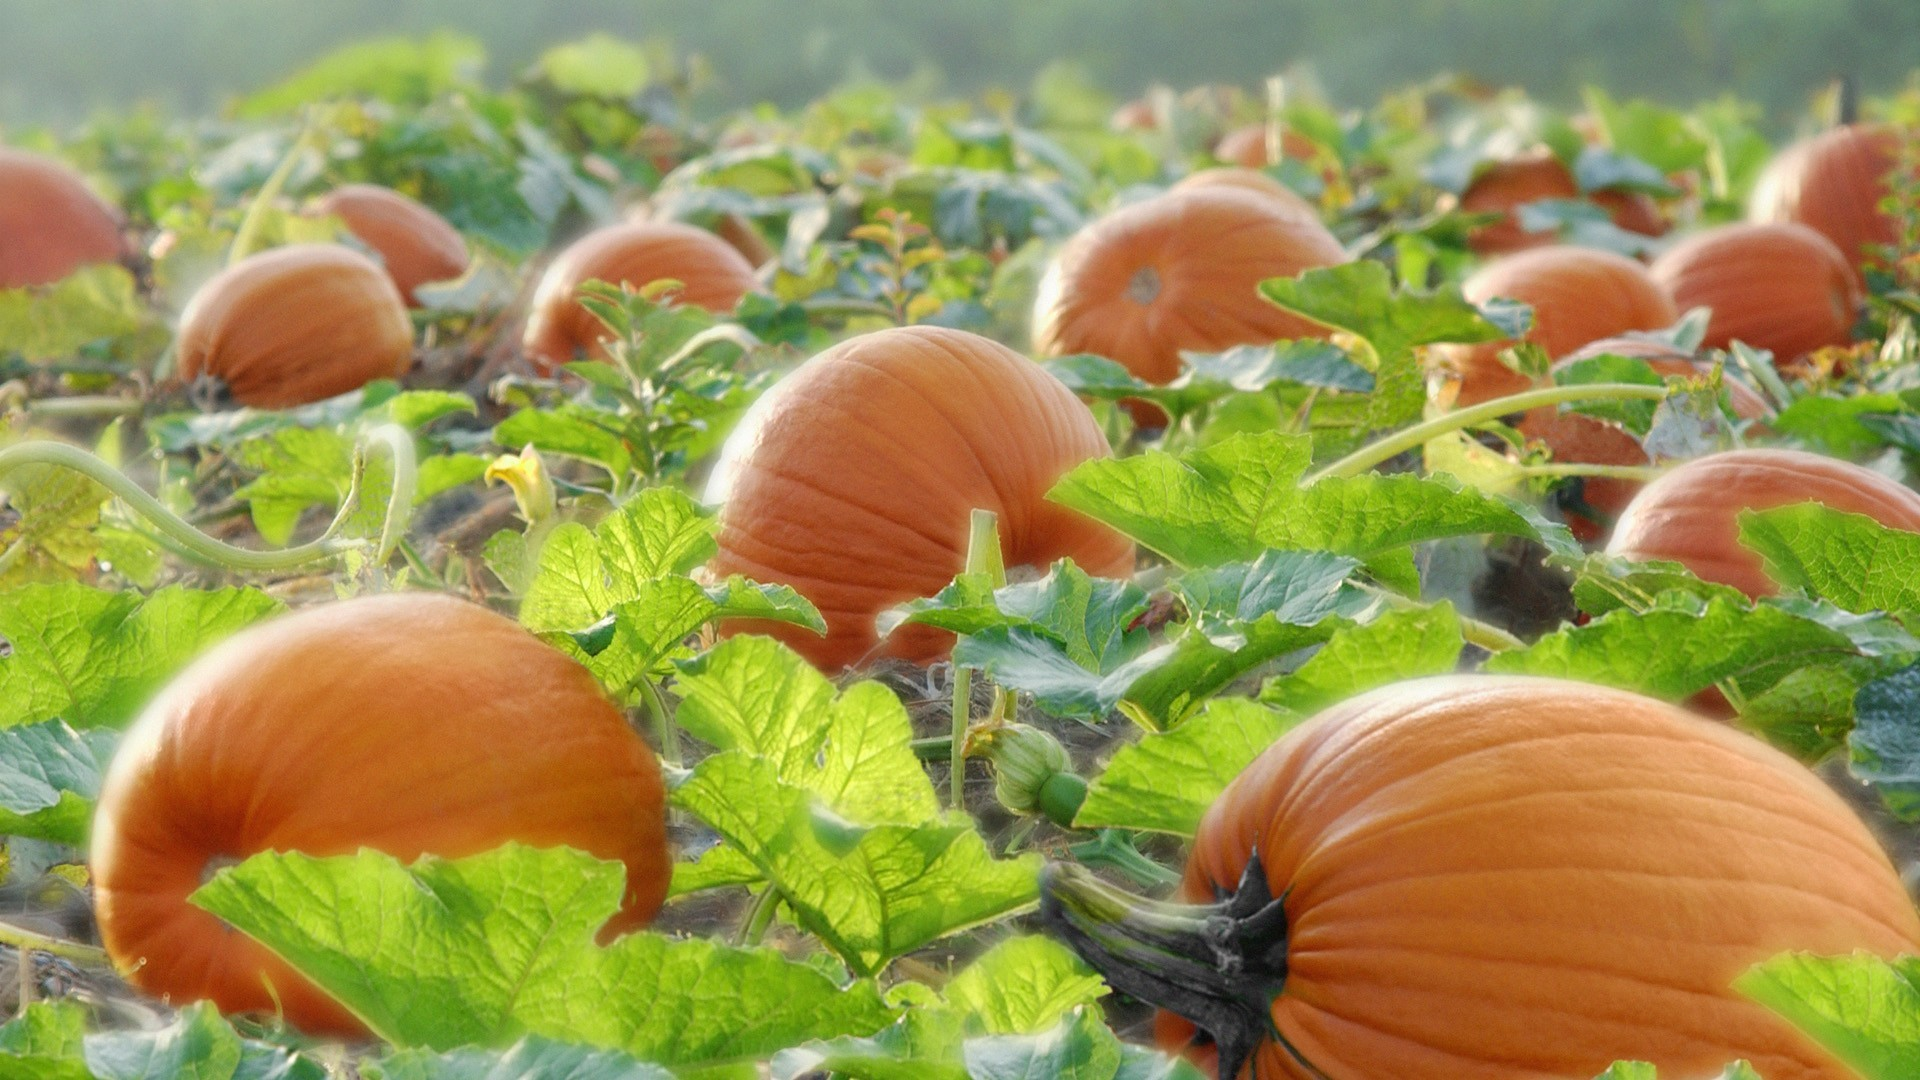 Gallery For > Pumpkin Field Wallpaper